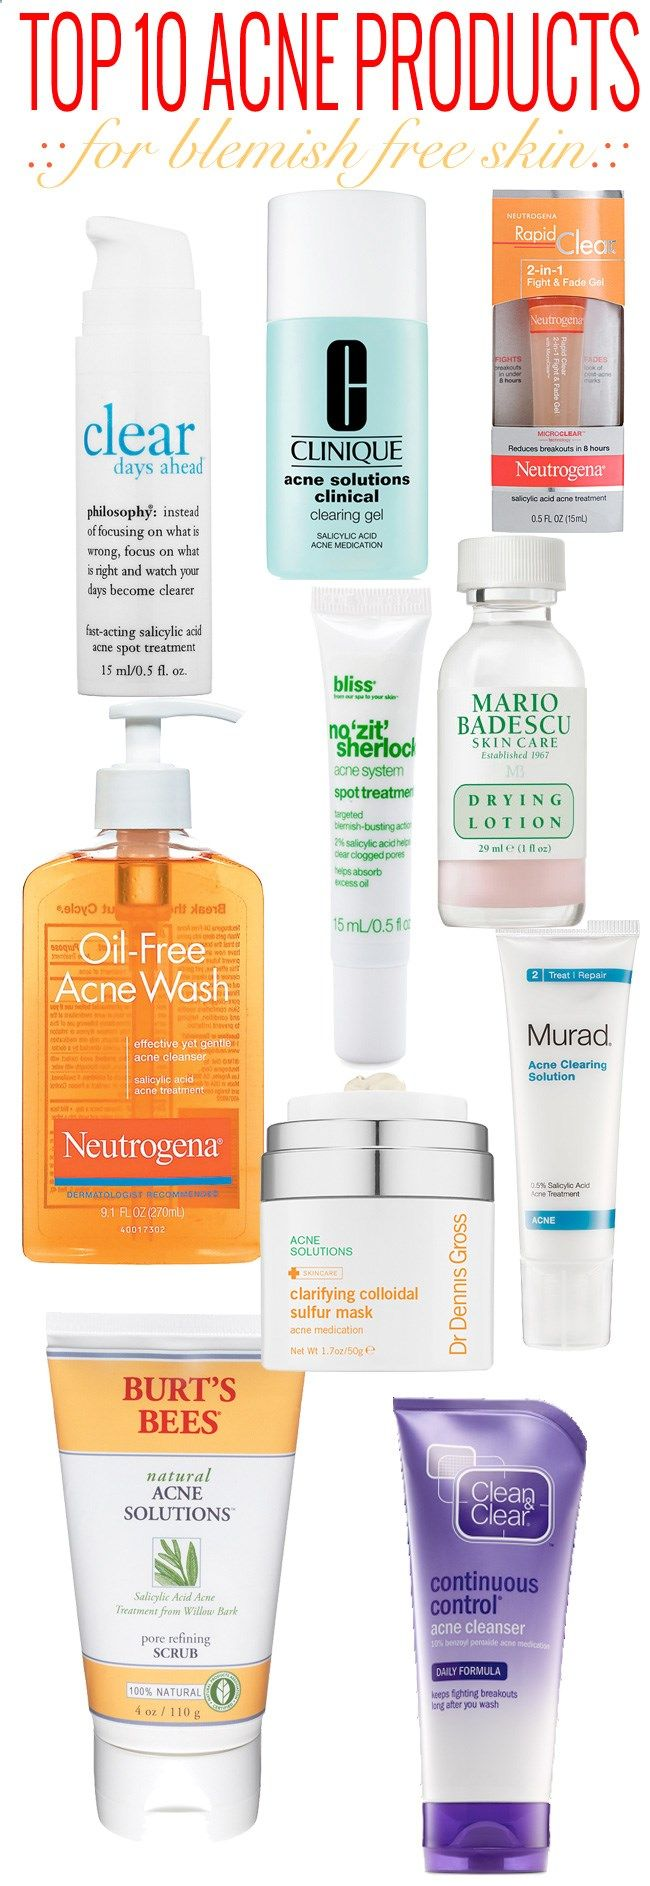 The best acne products to get rid of pimples and blemishes